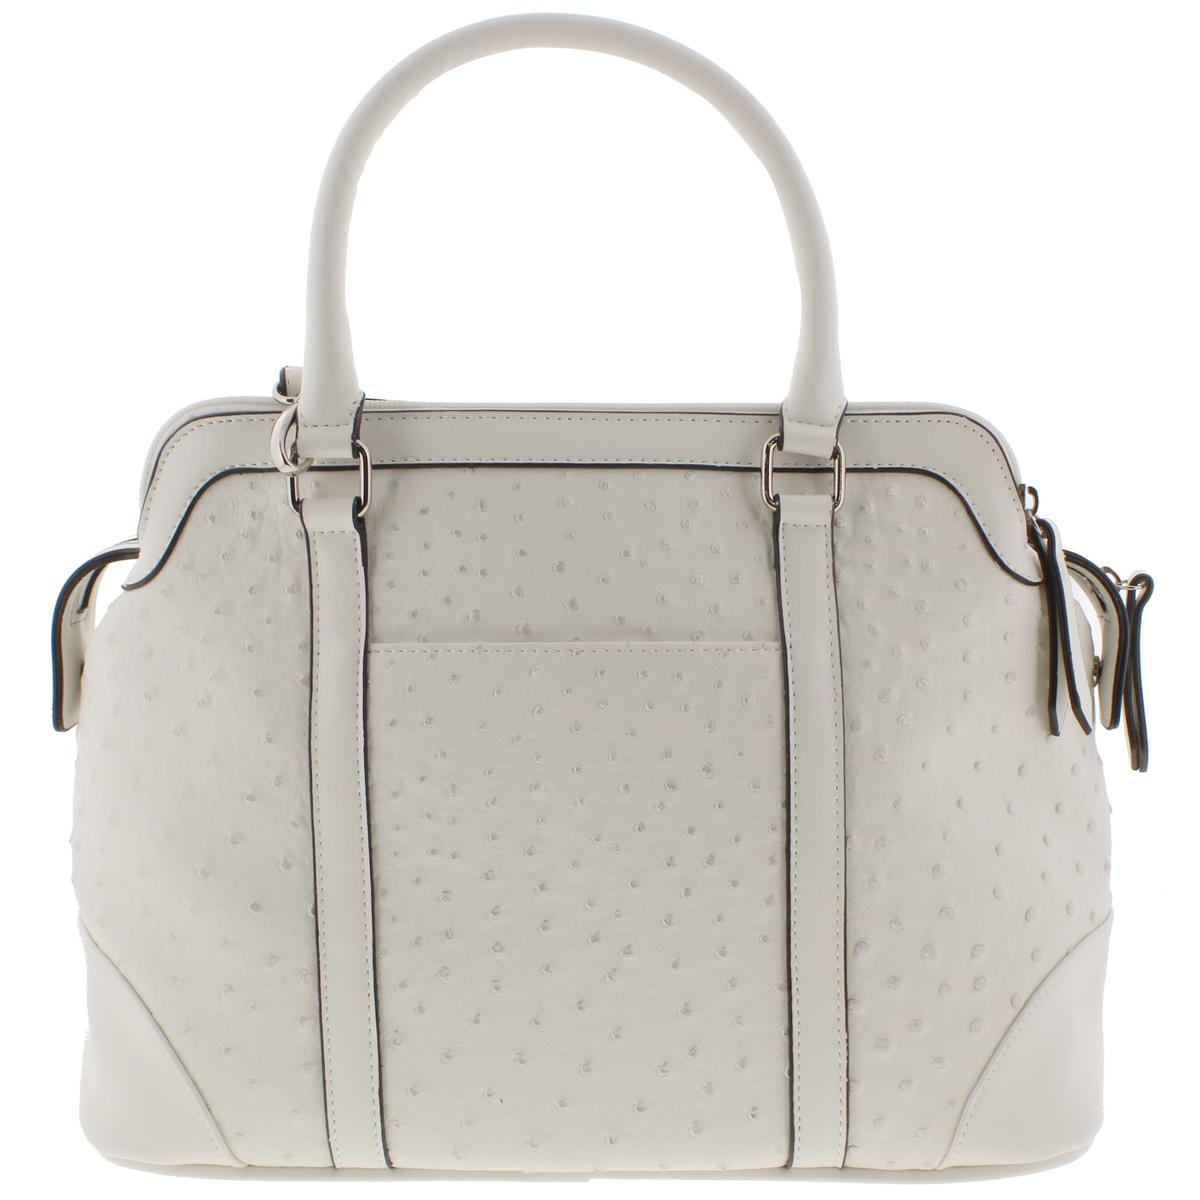 London-Fog-3688-Womens-Textured-Leather-Convertible-Tote-Handbag-Purse-BHFO